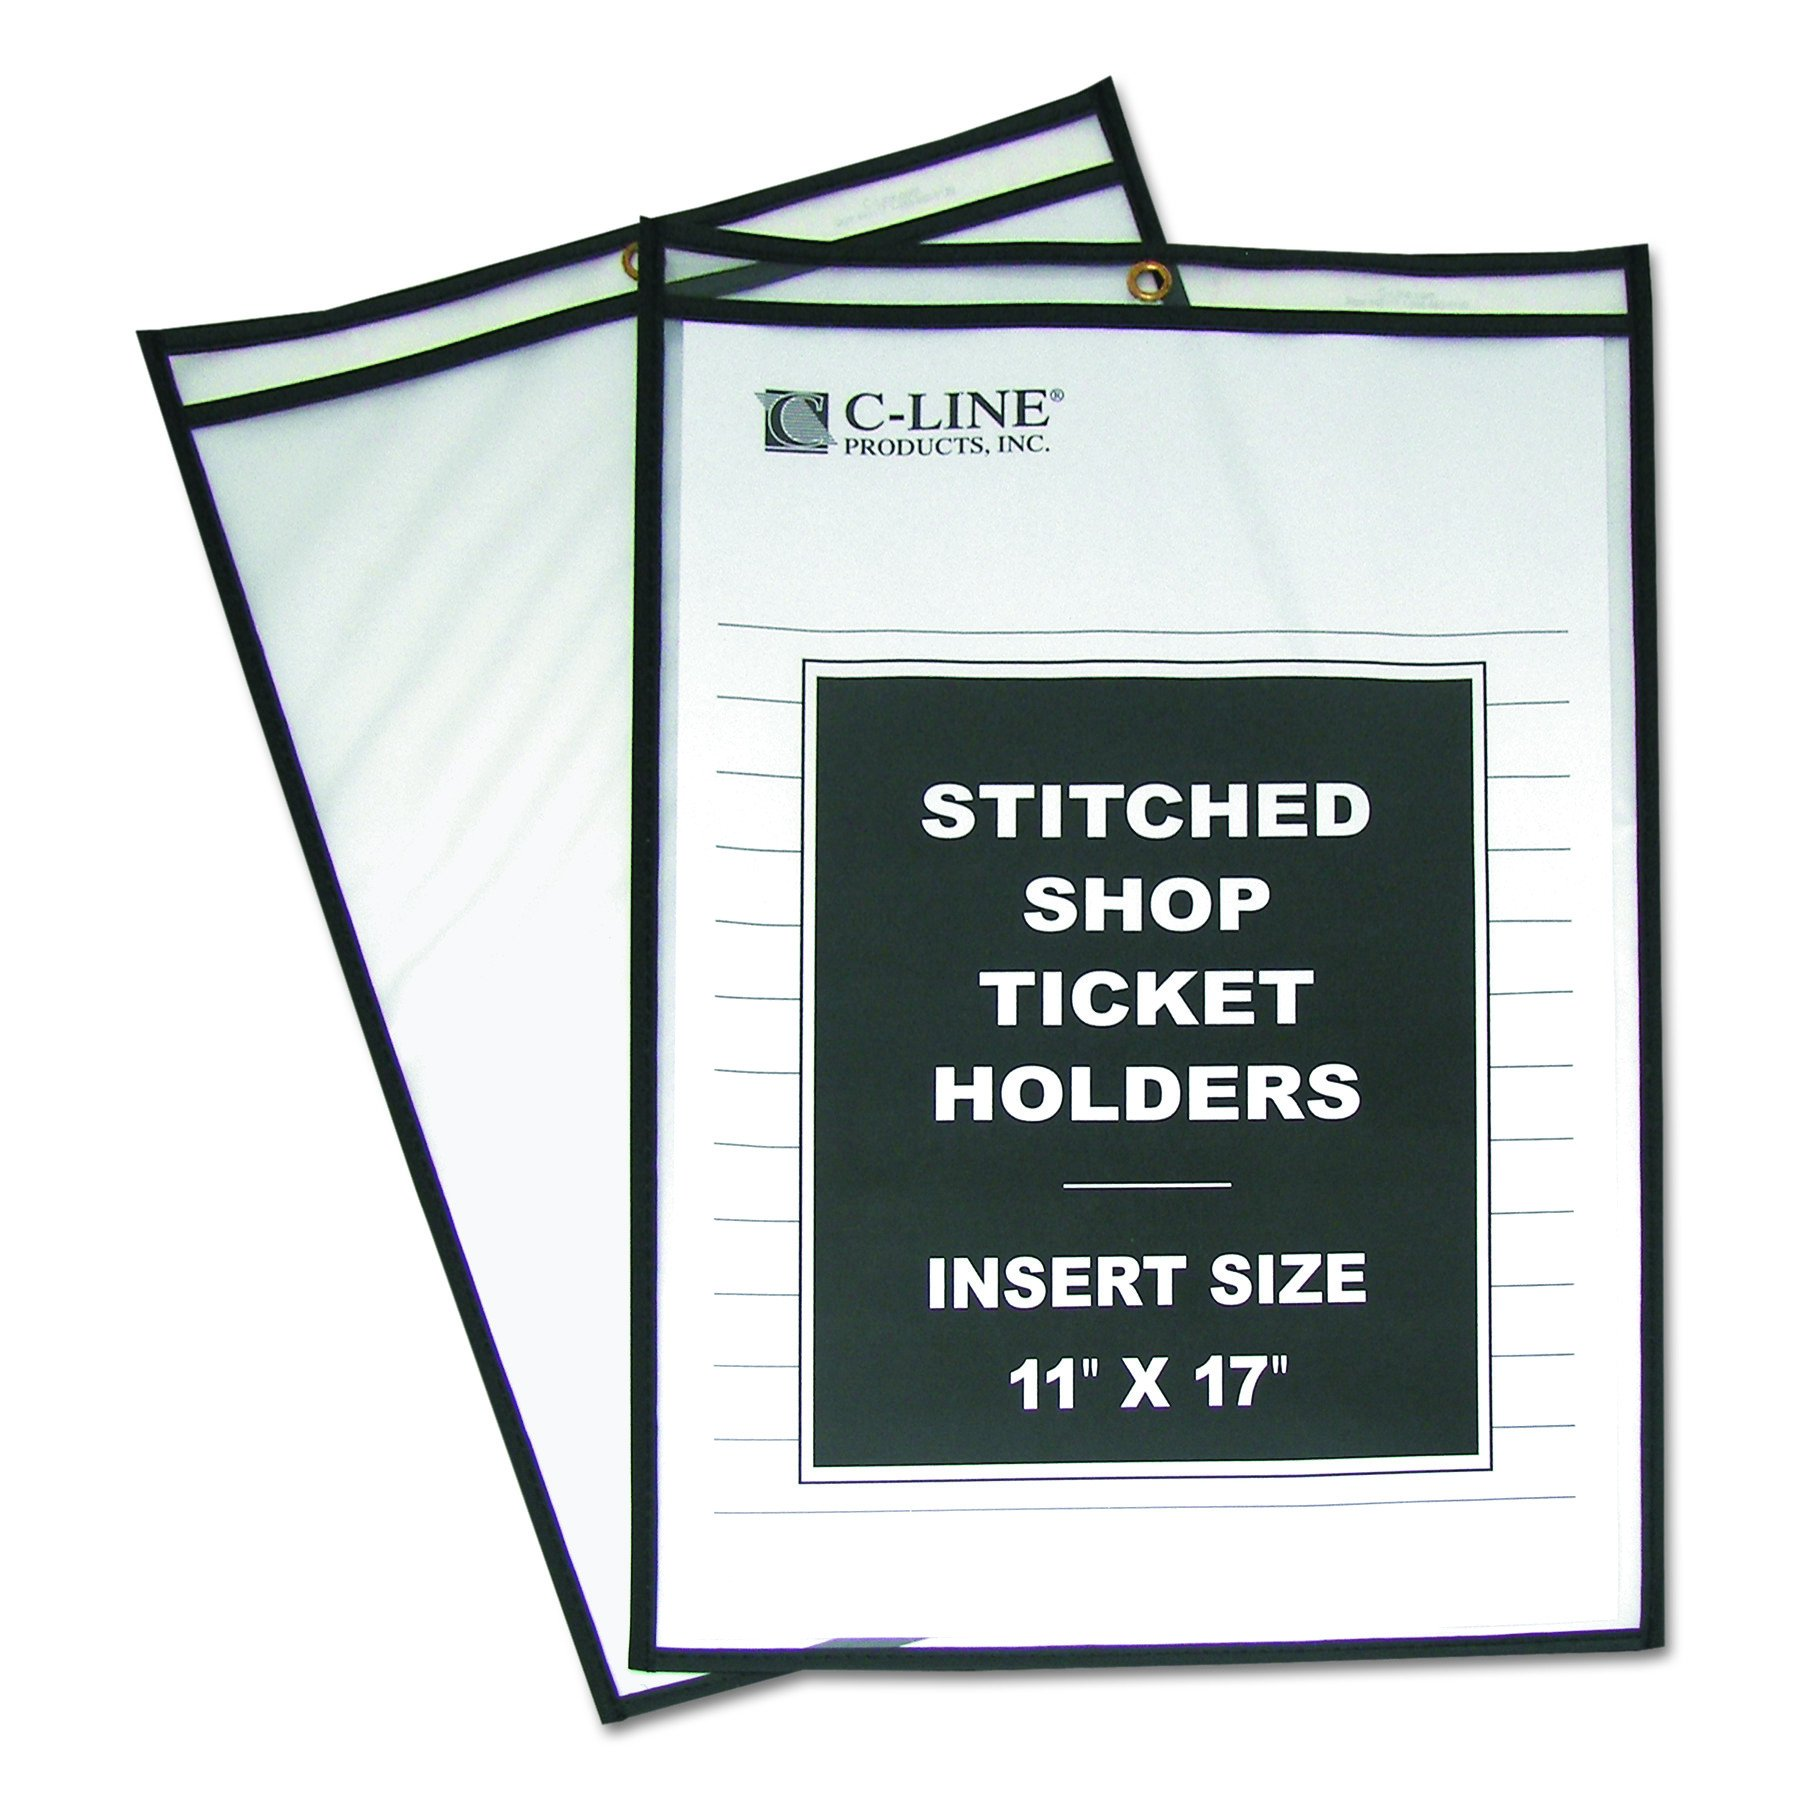 C-Line Stitched Shop Ticket Holders, Both Sides Clear, 11 x 17 Inches, 25 per Box (46117) by C-Line